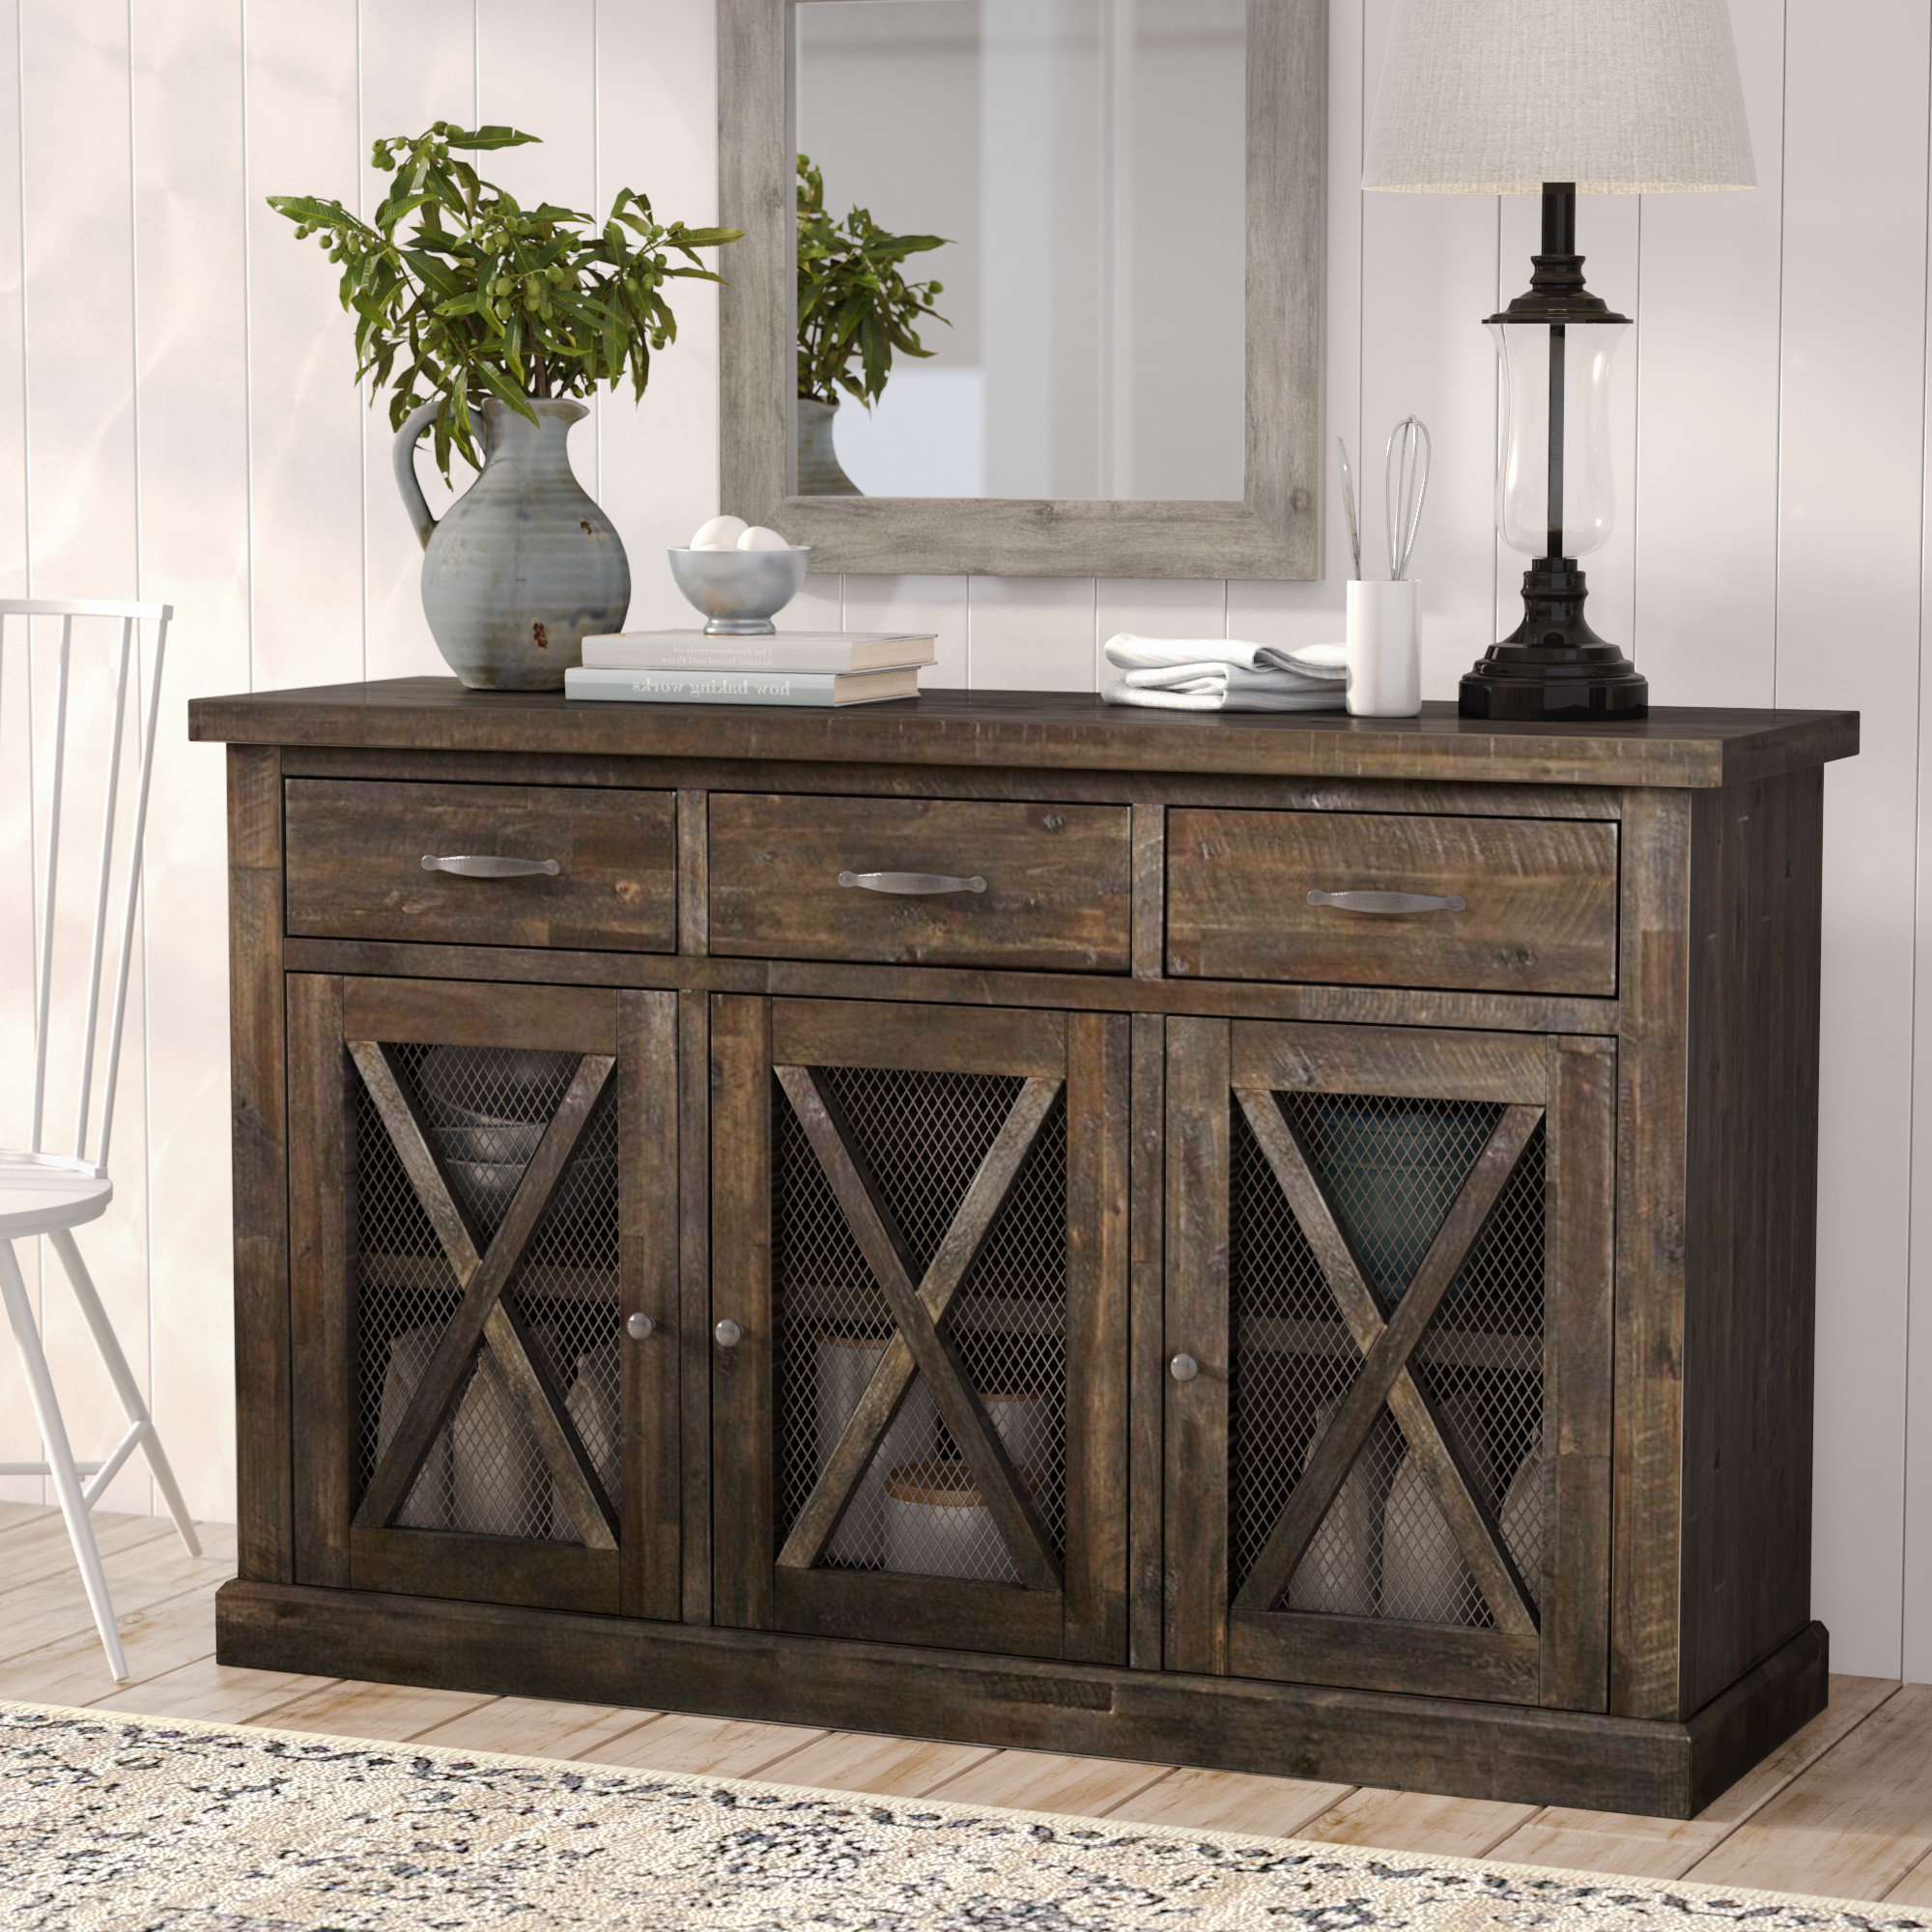 Weathered Grey Buffet | Wayfair With Regard To Contemporary Distressed Grey Buffets (View 20 of 20)